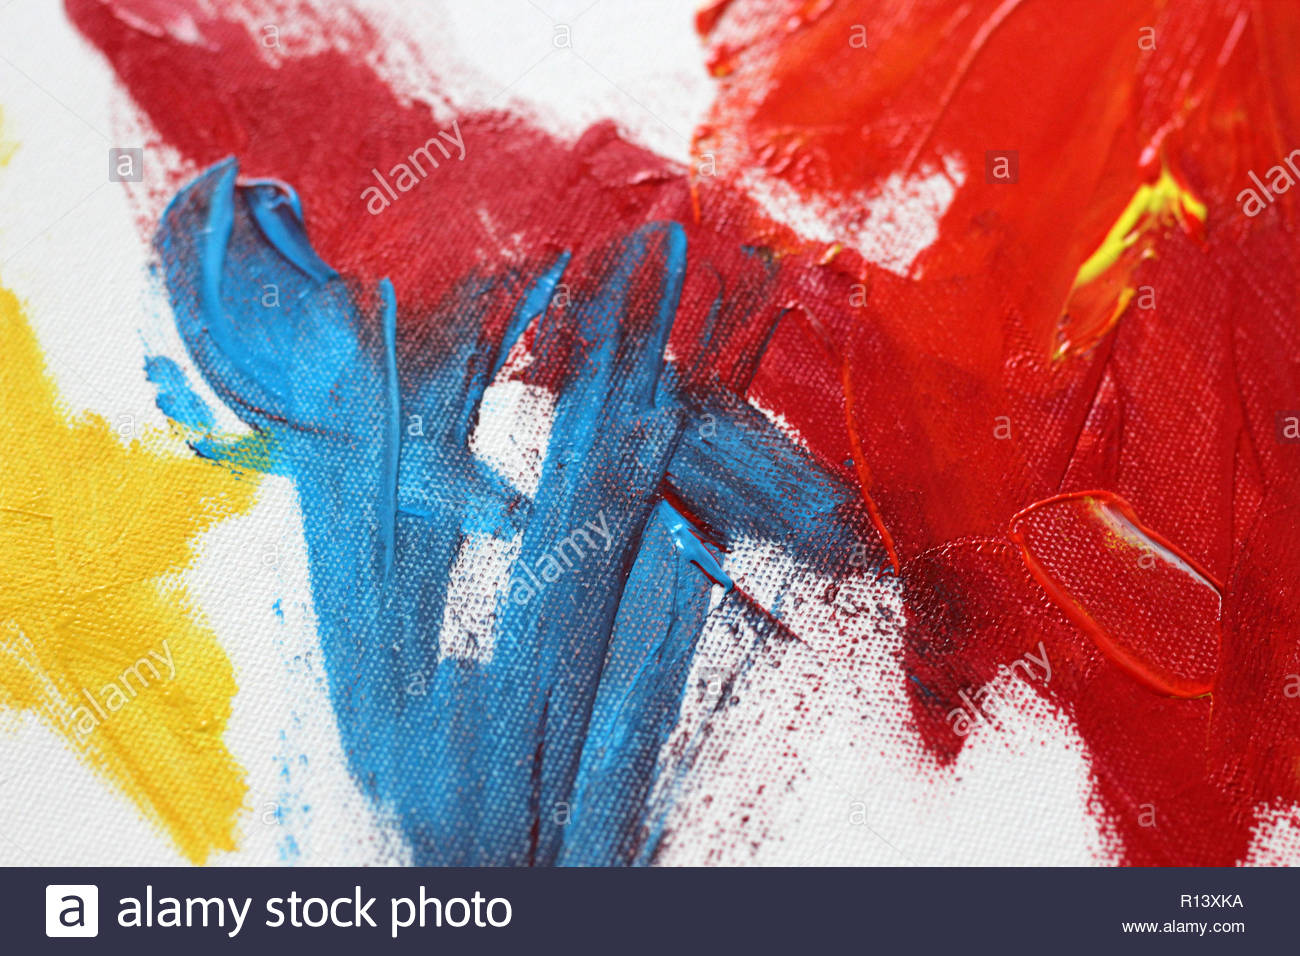 Full Frame Arts And Craft Shot Of A Painting Stock Photo 224436222